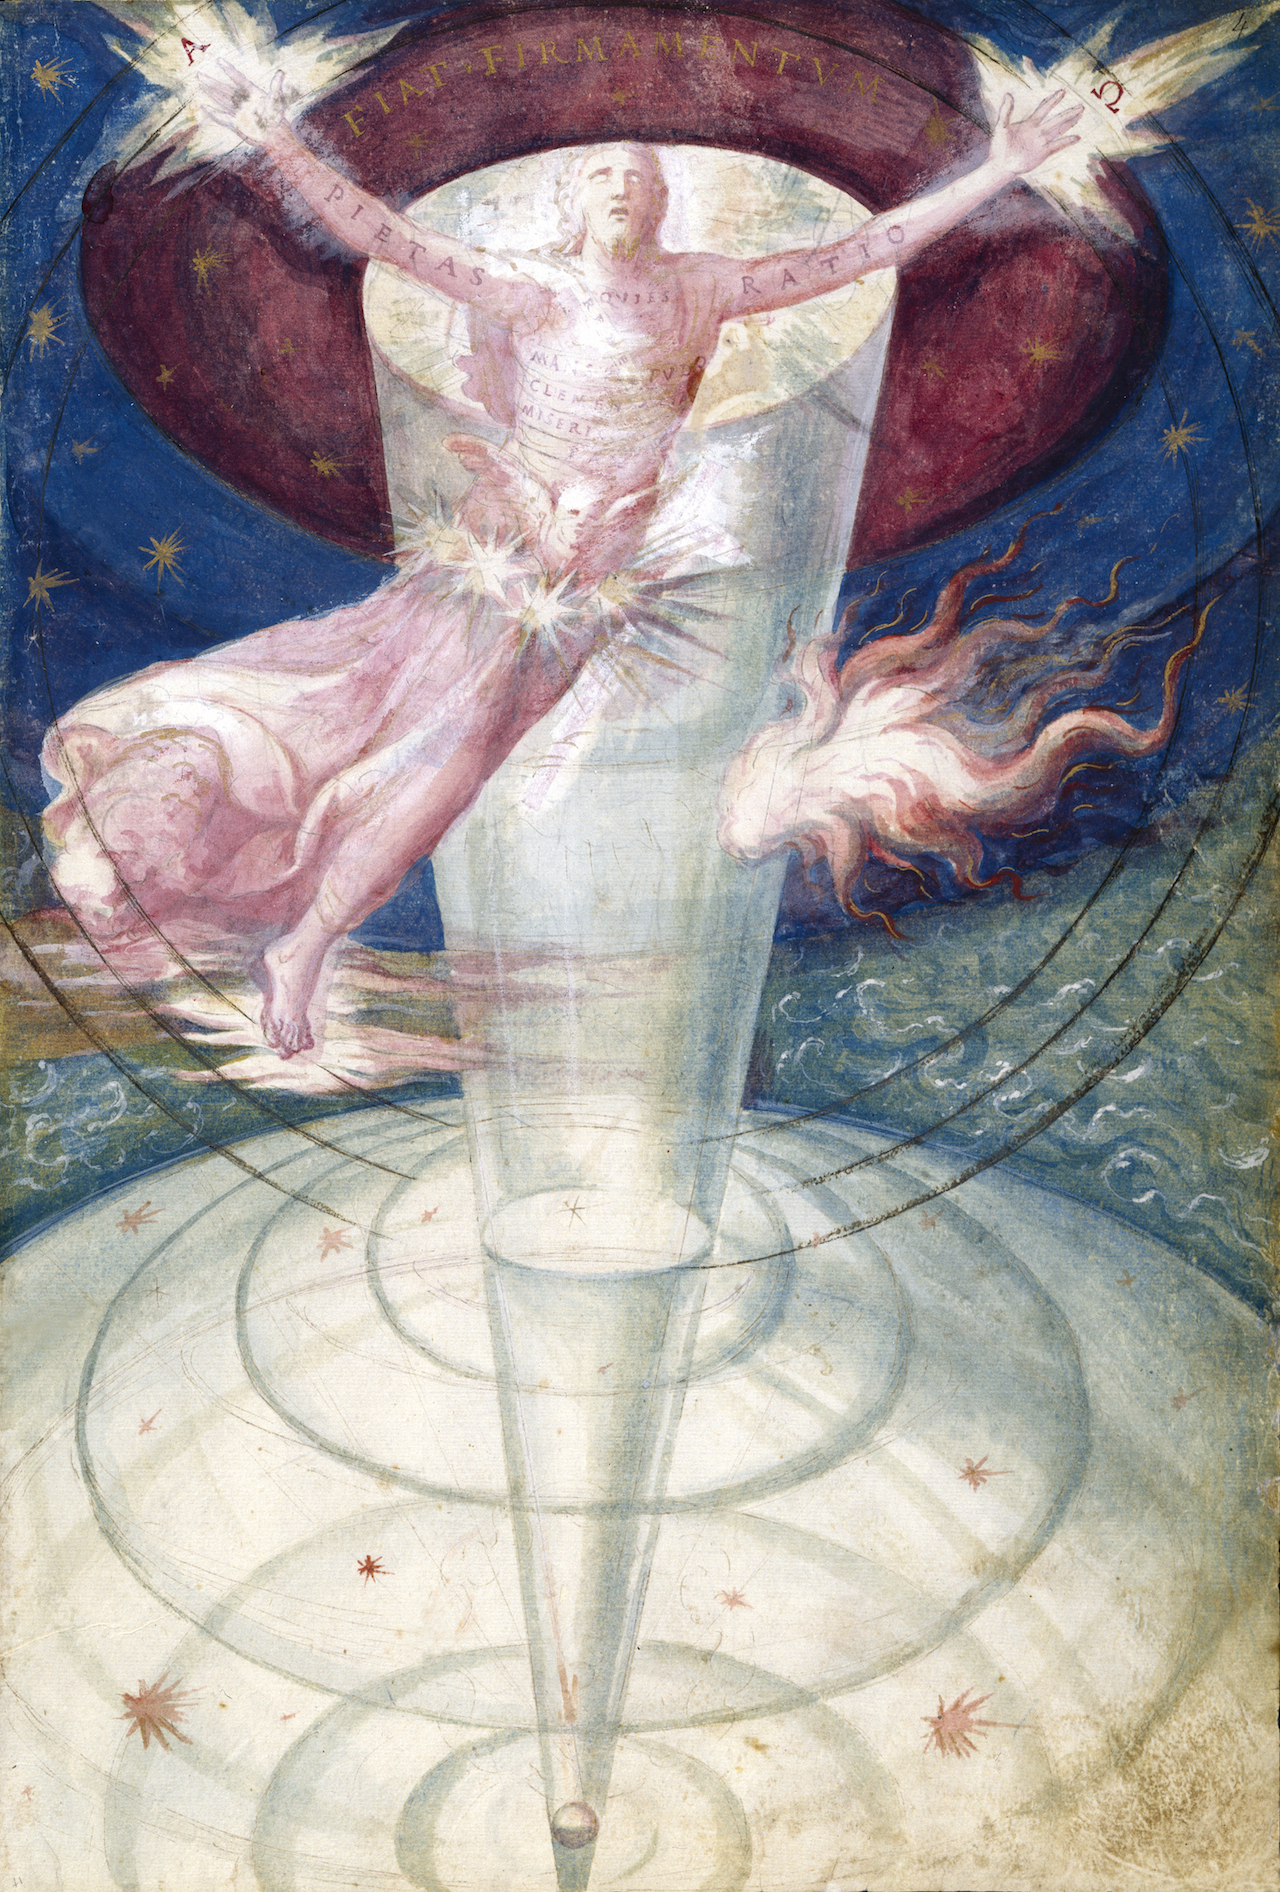 1573 illustration of the universe and the divine creator by Francisco de Holanda (courtesy Biblioteca Nationale Spain)